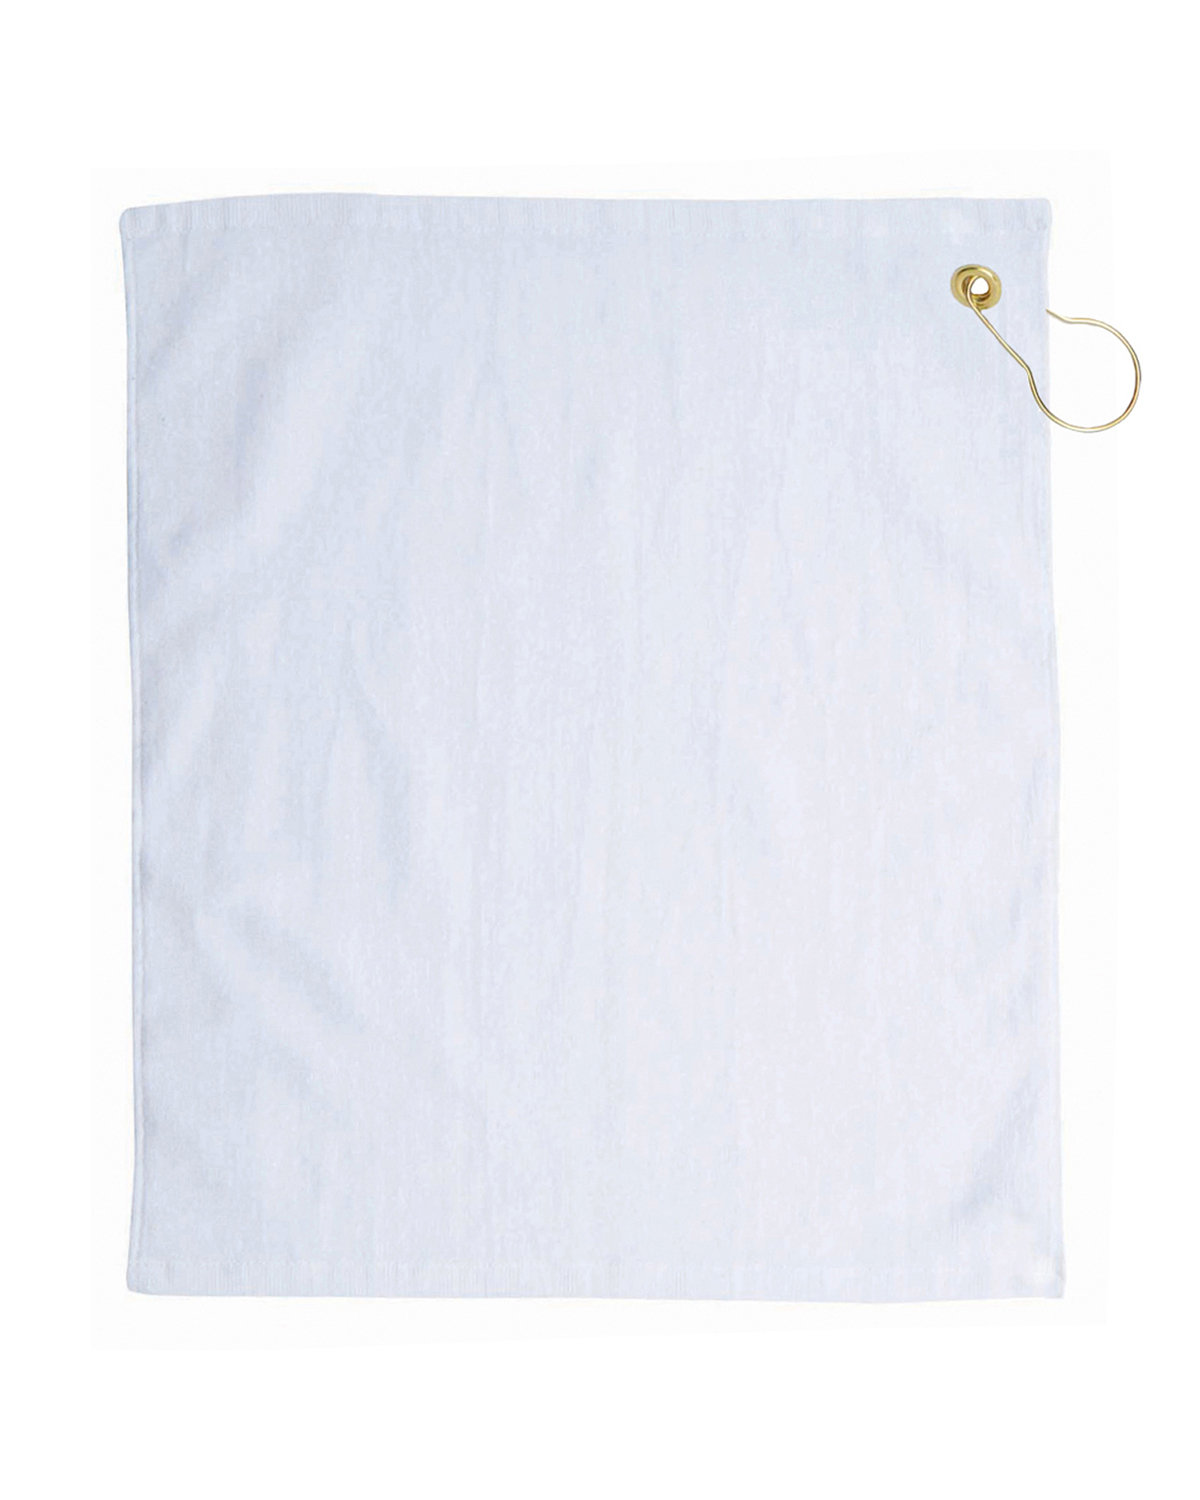 TRU18CG Pro Towels Jewel Collection Soft Touch Golf Towel 2180fea9f2cc